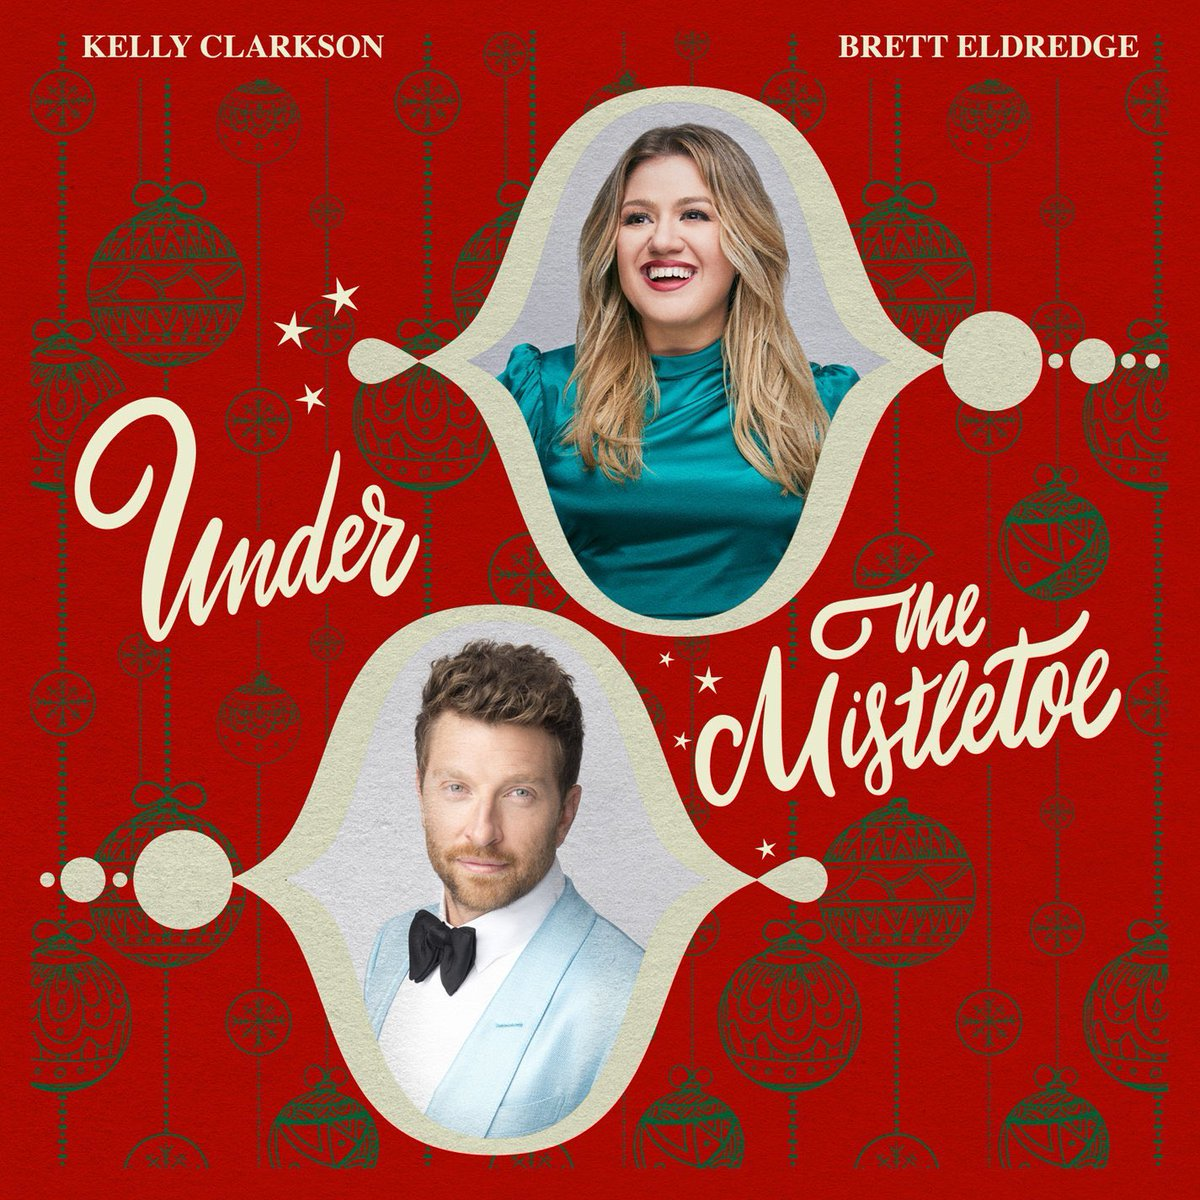 Hey, @Hits93Toronto! Play Under The Mistletoe by @kellyclarkson & @BrettEldredge, Please?! Thank you. 🧑🏼👱🏻‍♂️🎅🏻🎁🎄🎼📻🙏🏻🙌🏻🤗😉 -Hannah- #REQUEST #Hits93Toronto #UnderTheMistletoe #TeamKelly #Hello2021